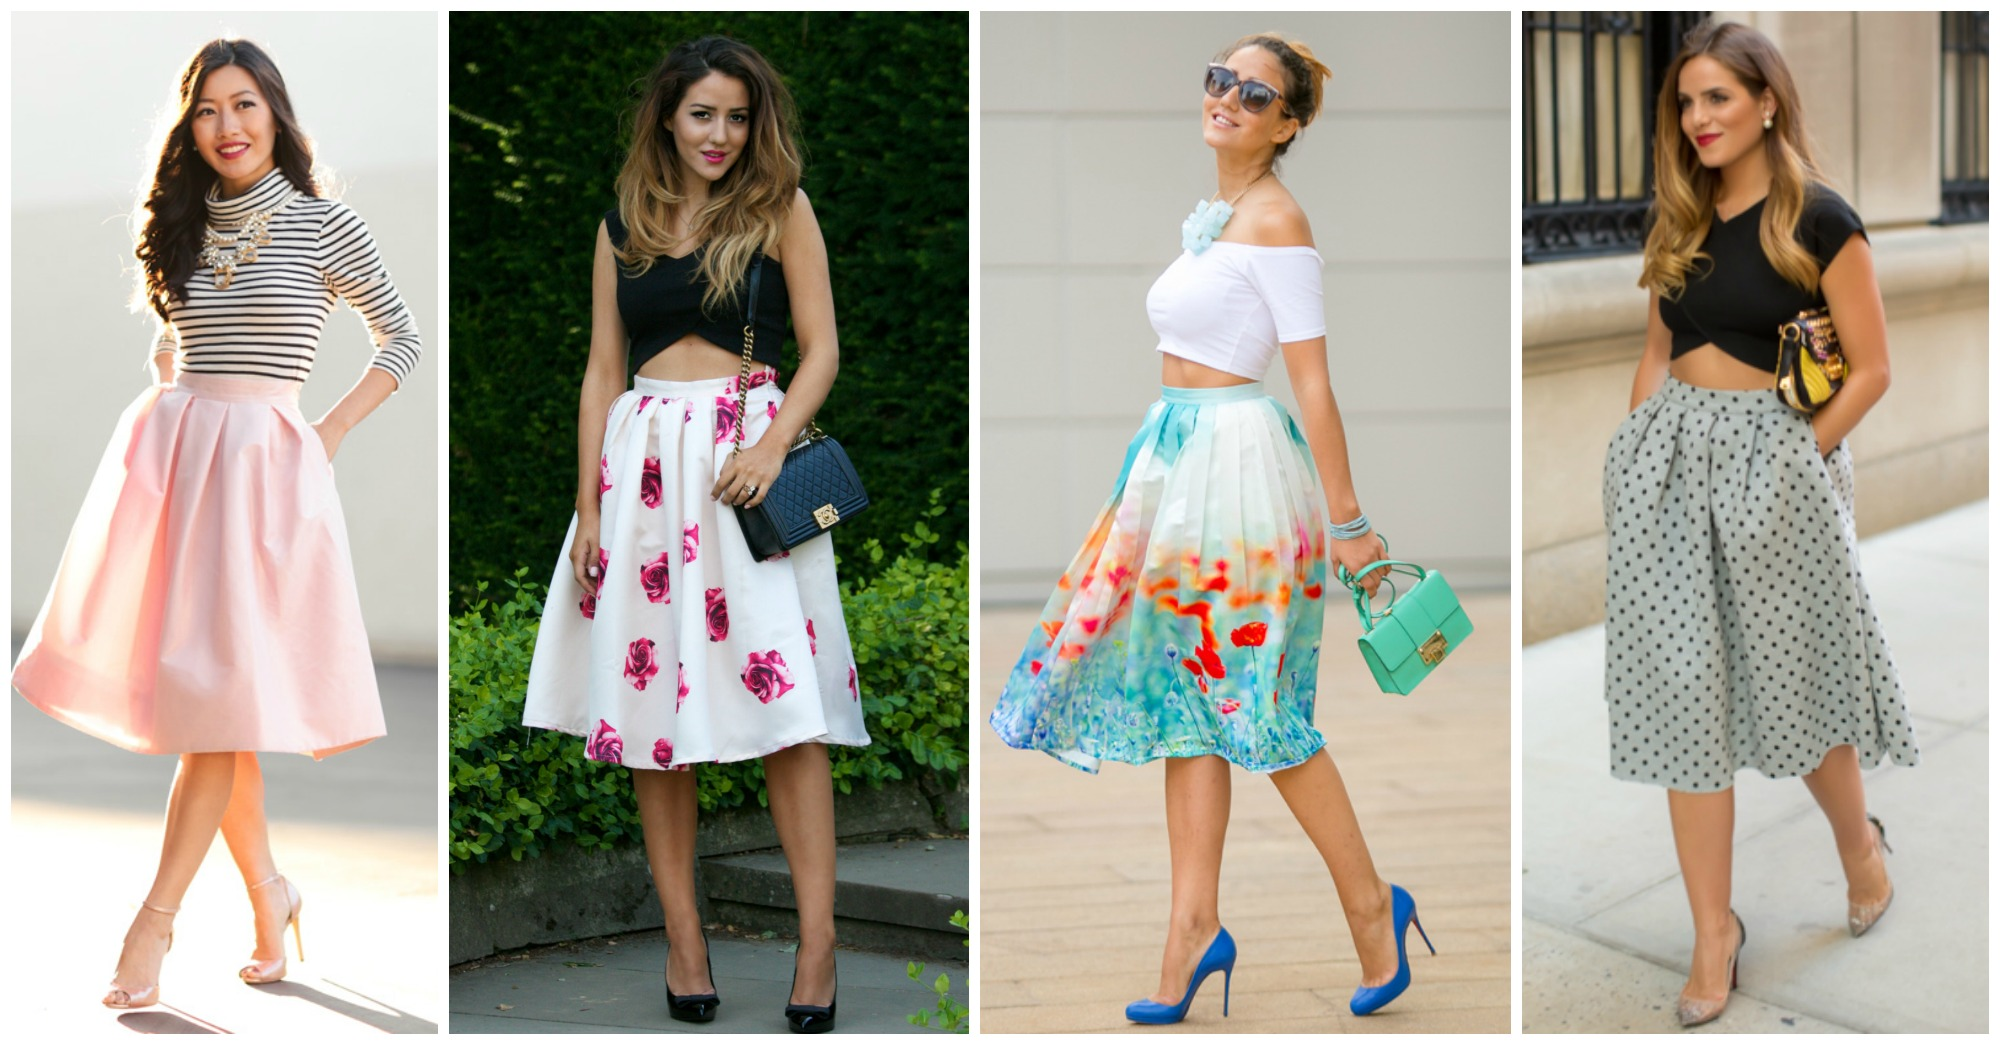 15 Stylish and Chic Outfits with Midi Skirts to Copy This Season